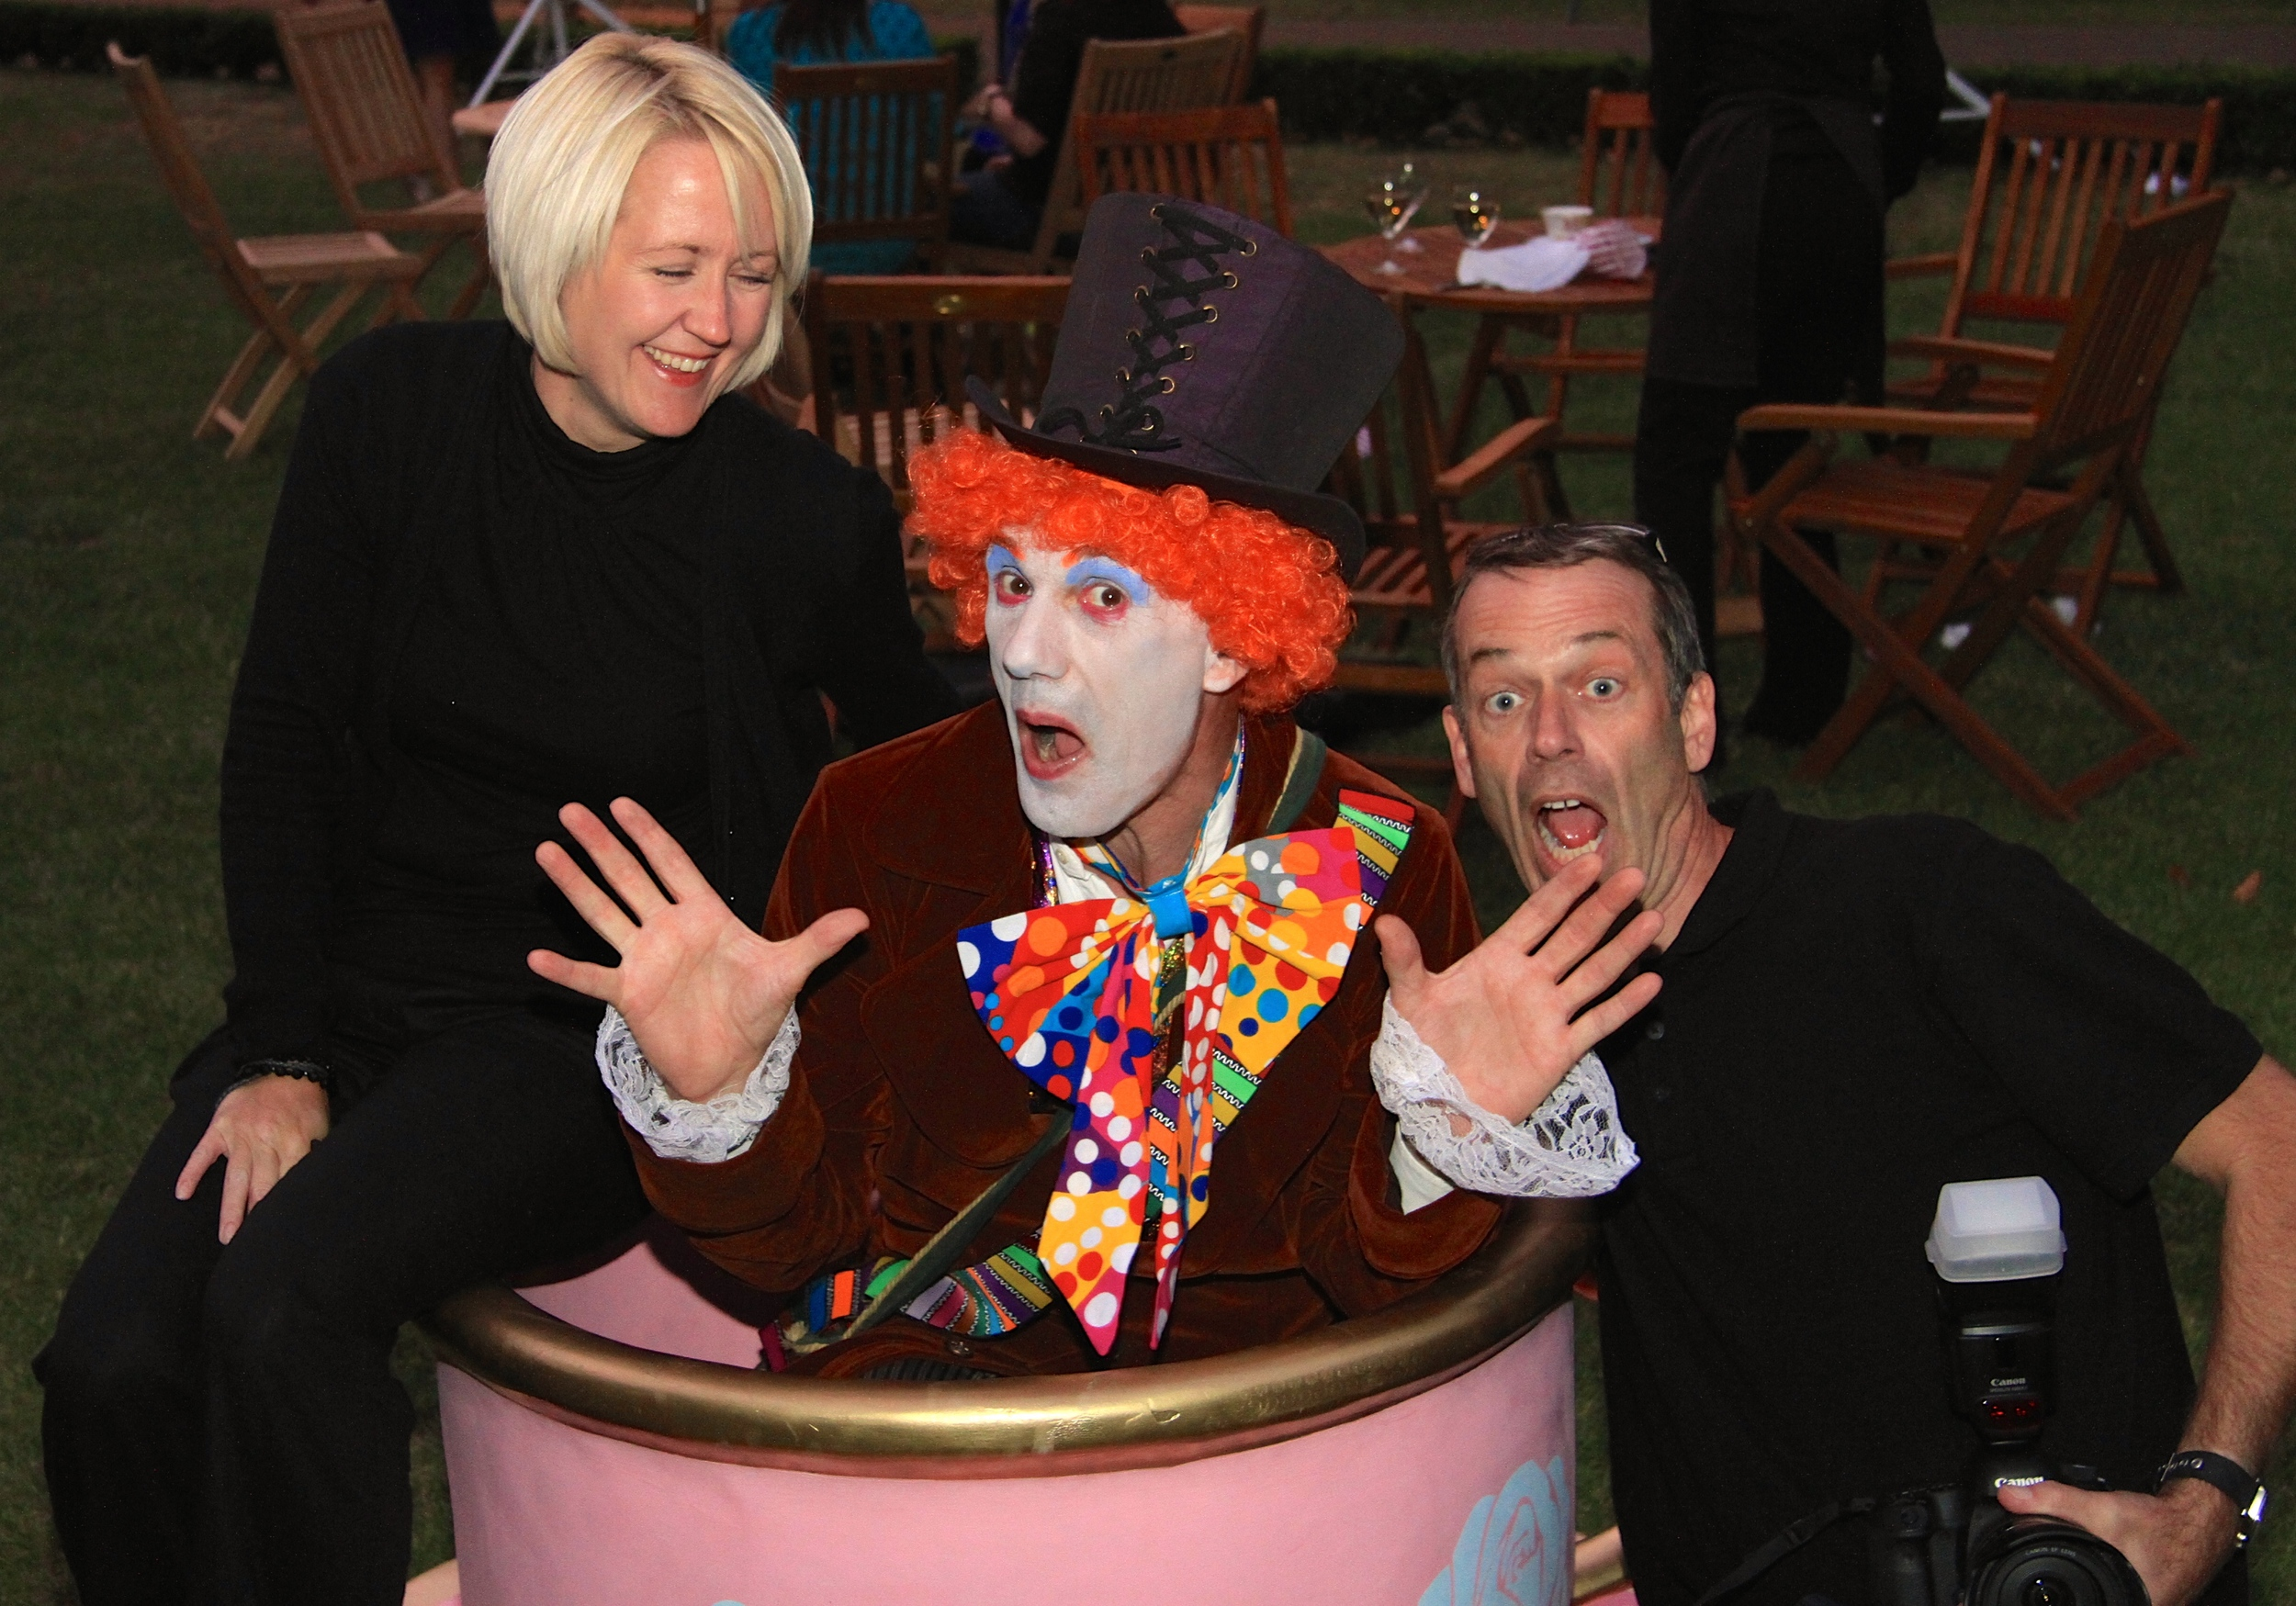 @ VelvetStorm_  Loving all the photo's taken at the Mad Hatter's Garden Party   http://  bit.ly/1mmNEOQ